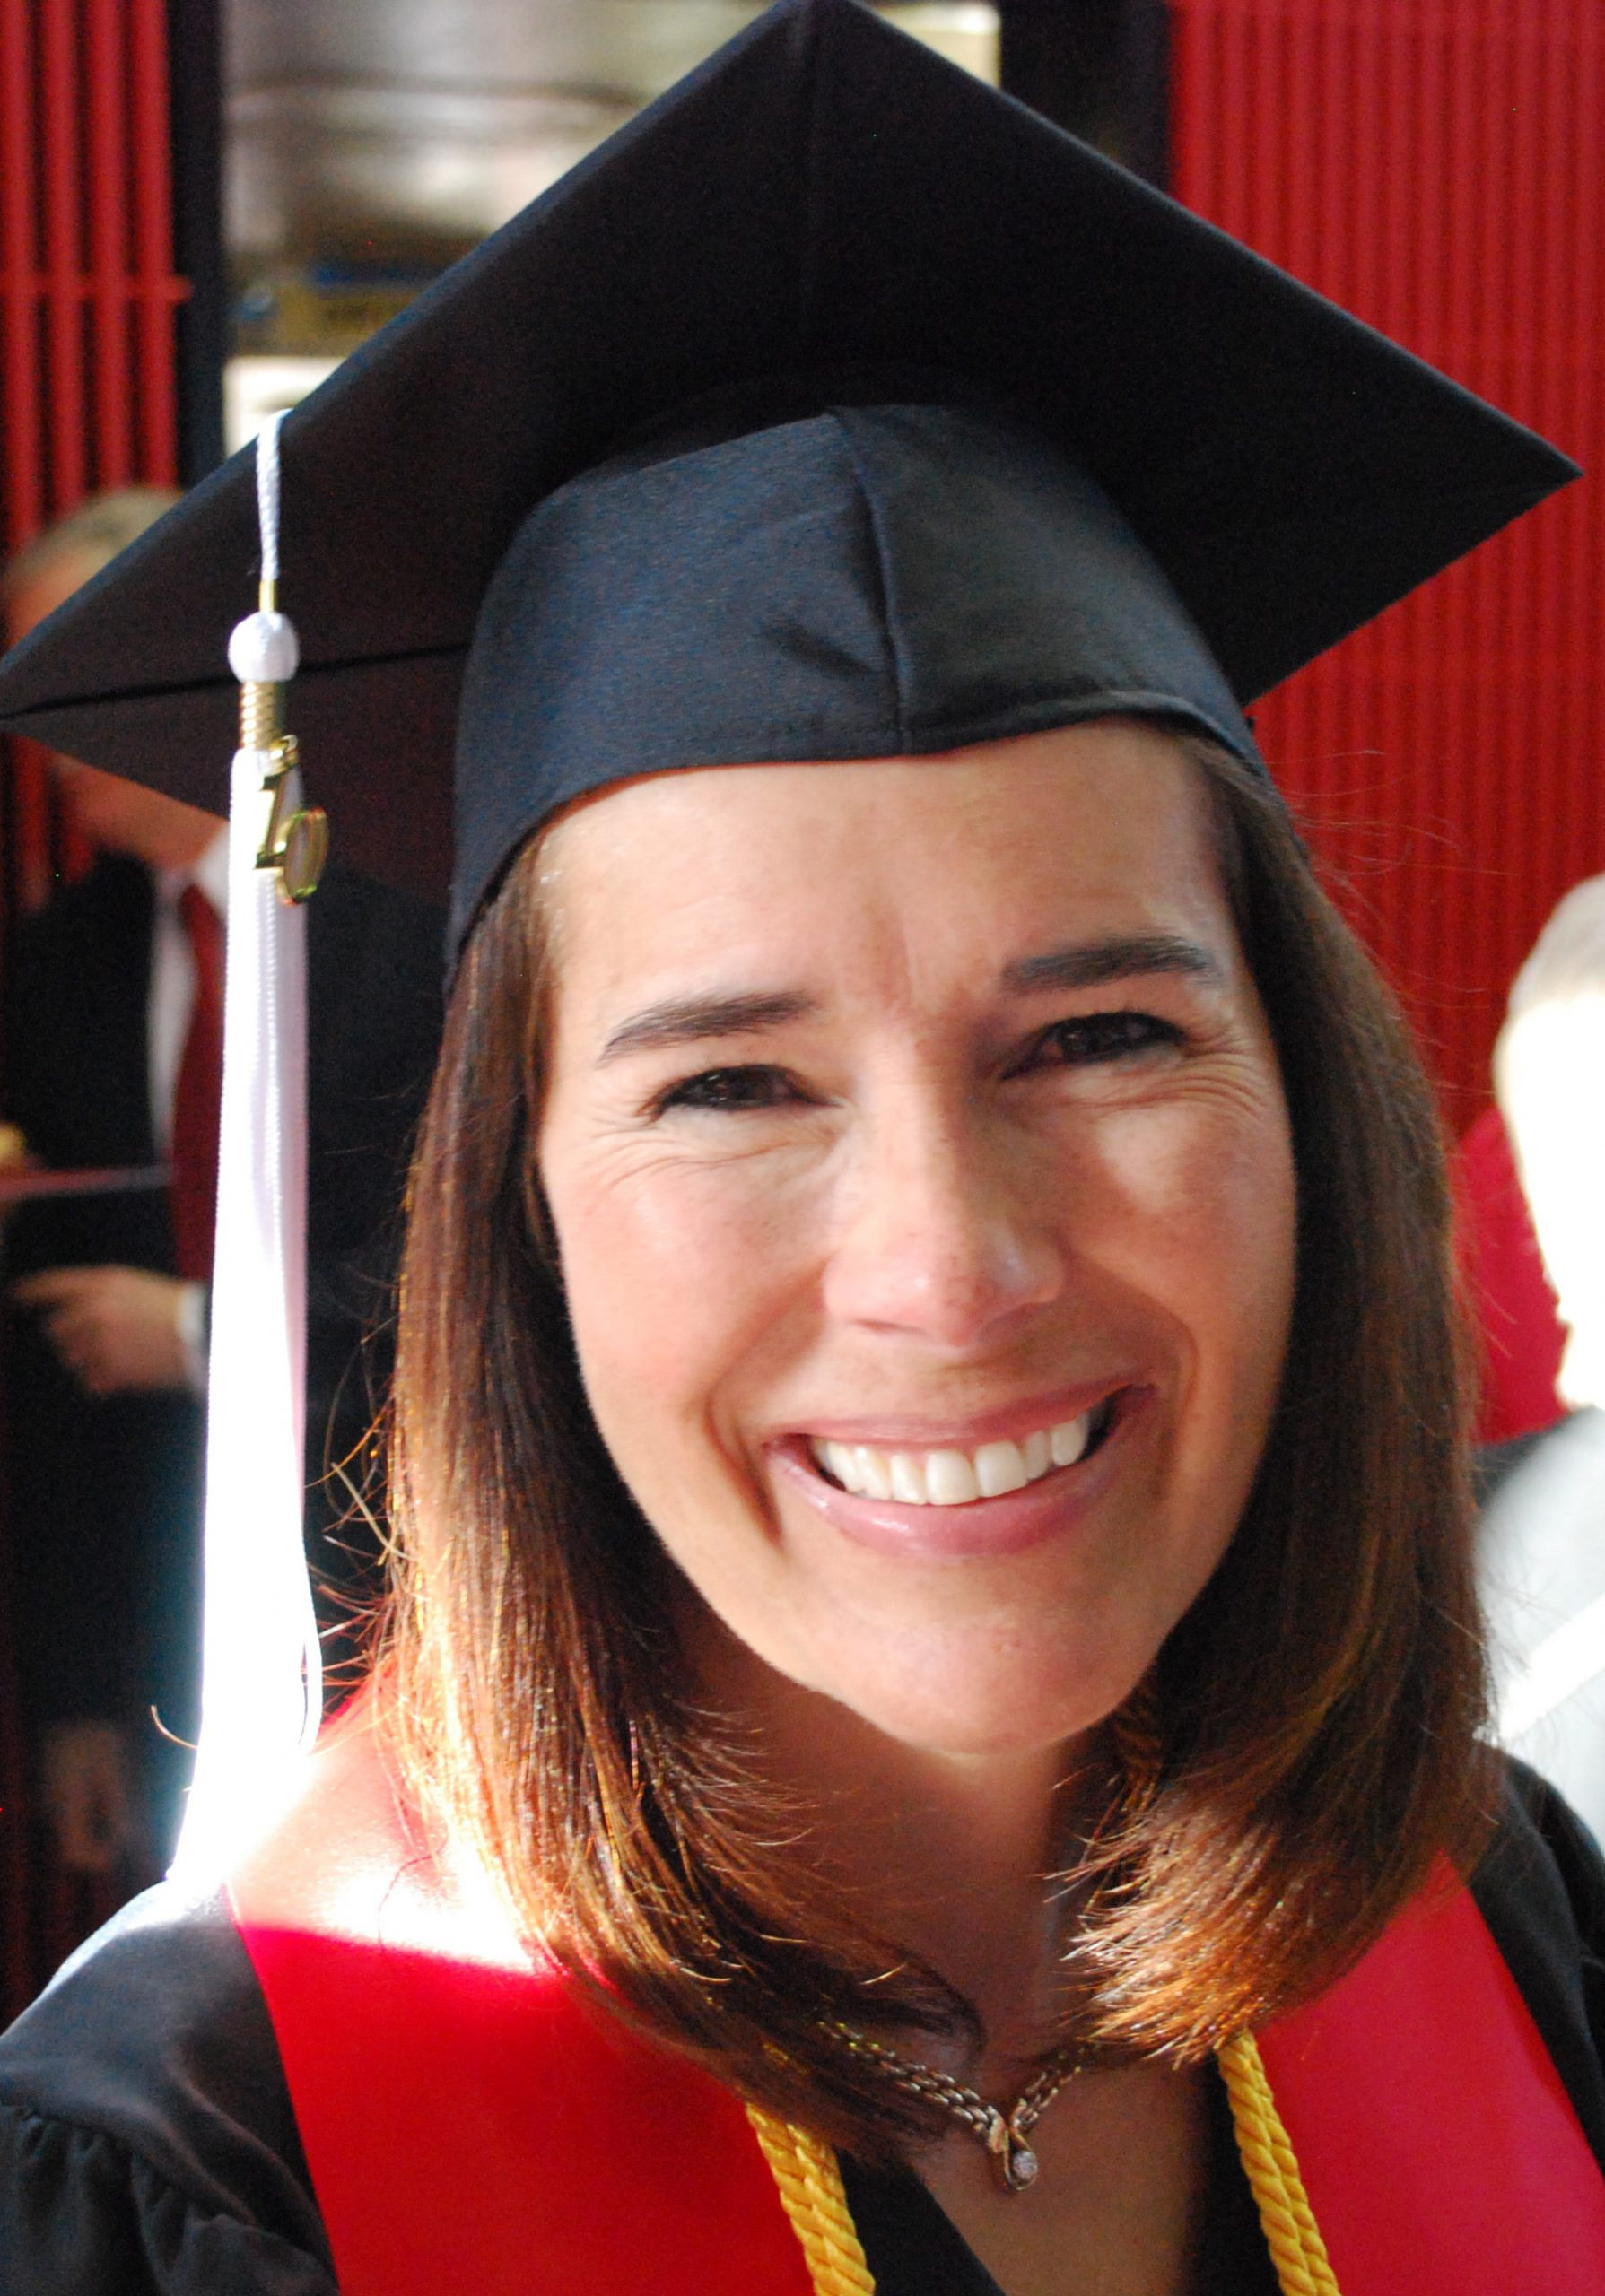 Student speakerJody Farley addressed the graduating class of 2010 at the U's commencement ceremonies on May 7.